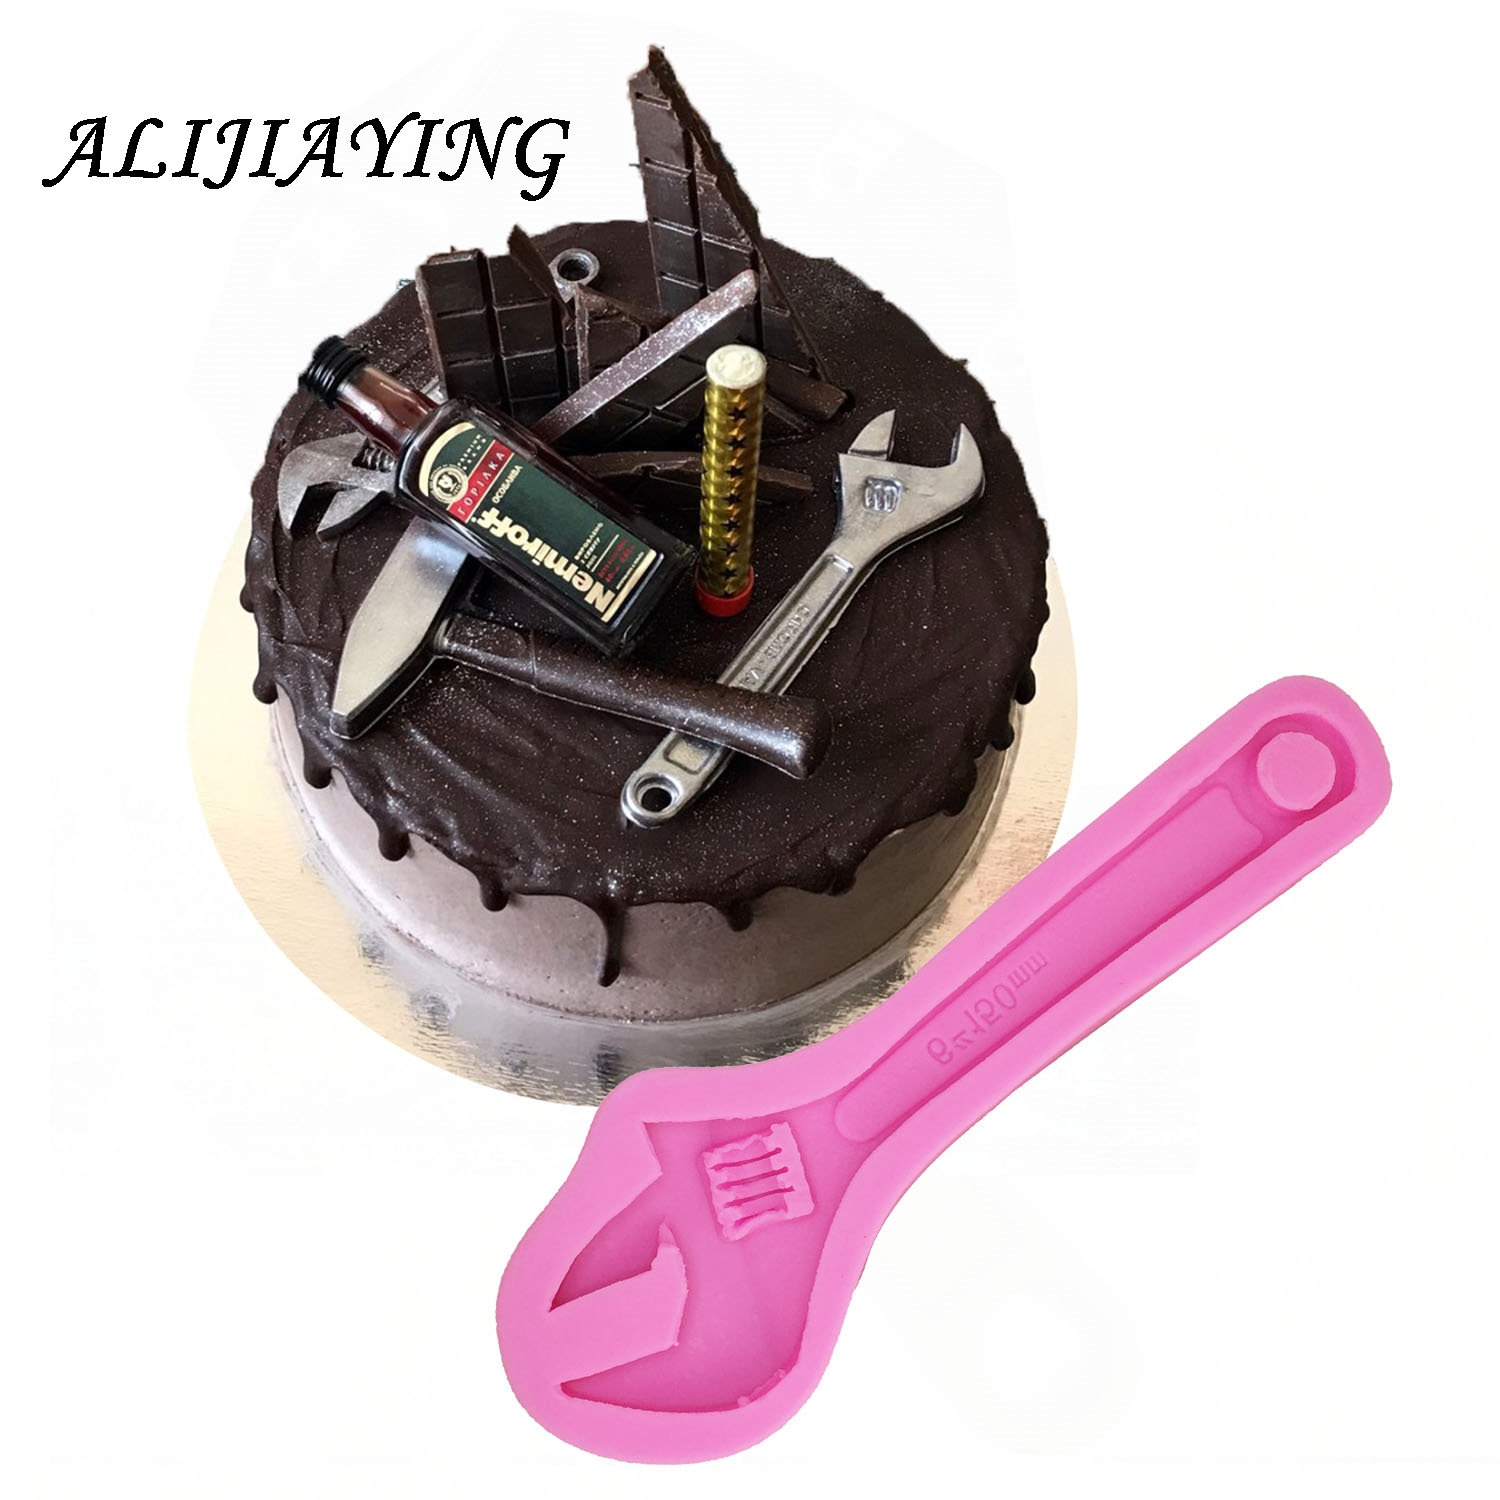 DIY Repair tools Silicone Mold Wrench Gadget Fondant Cake Mold chocolate Silicone Mould Cake decorating tools D0514 gadget